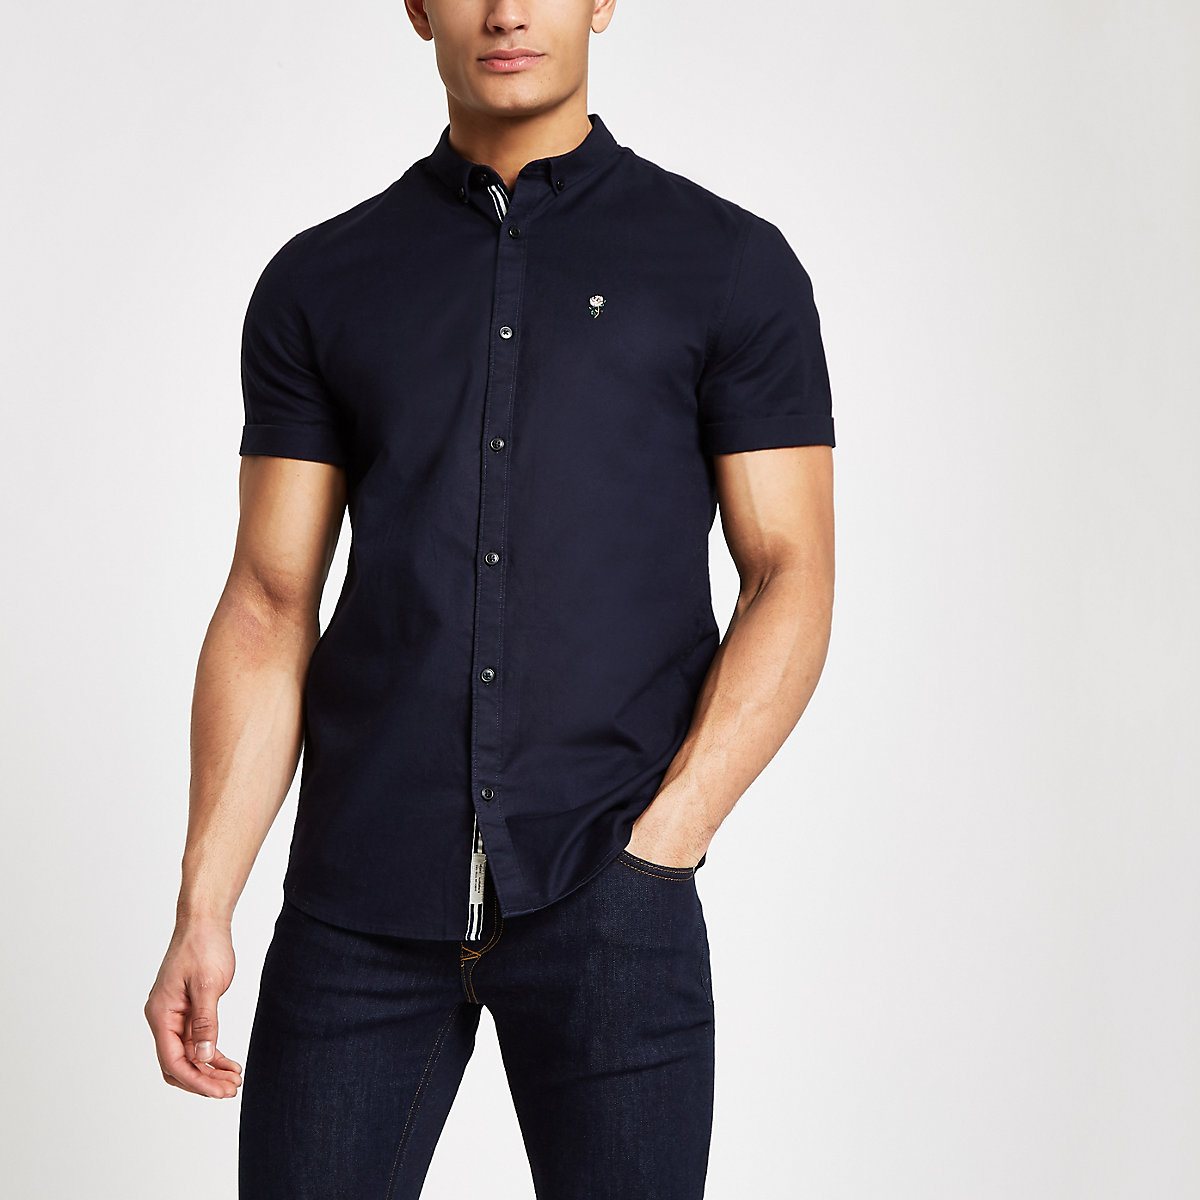 Navy muscle fit rose embroidered Oxford shirt